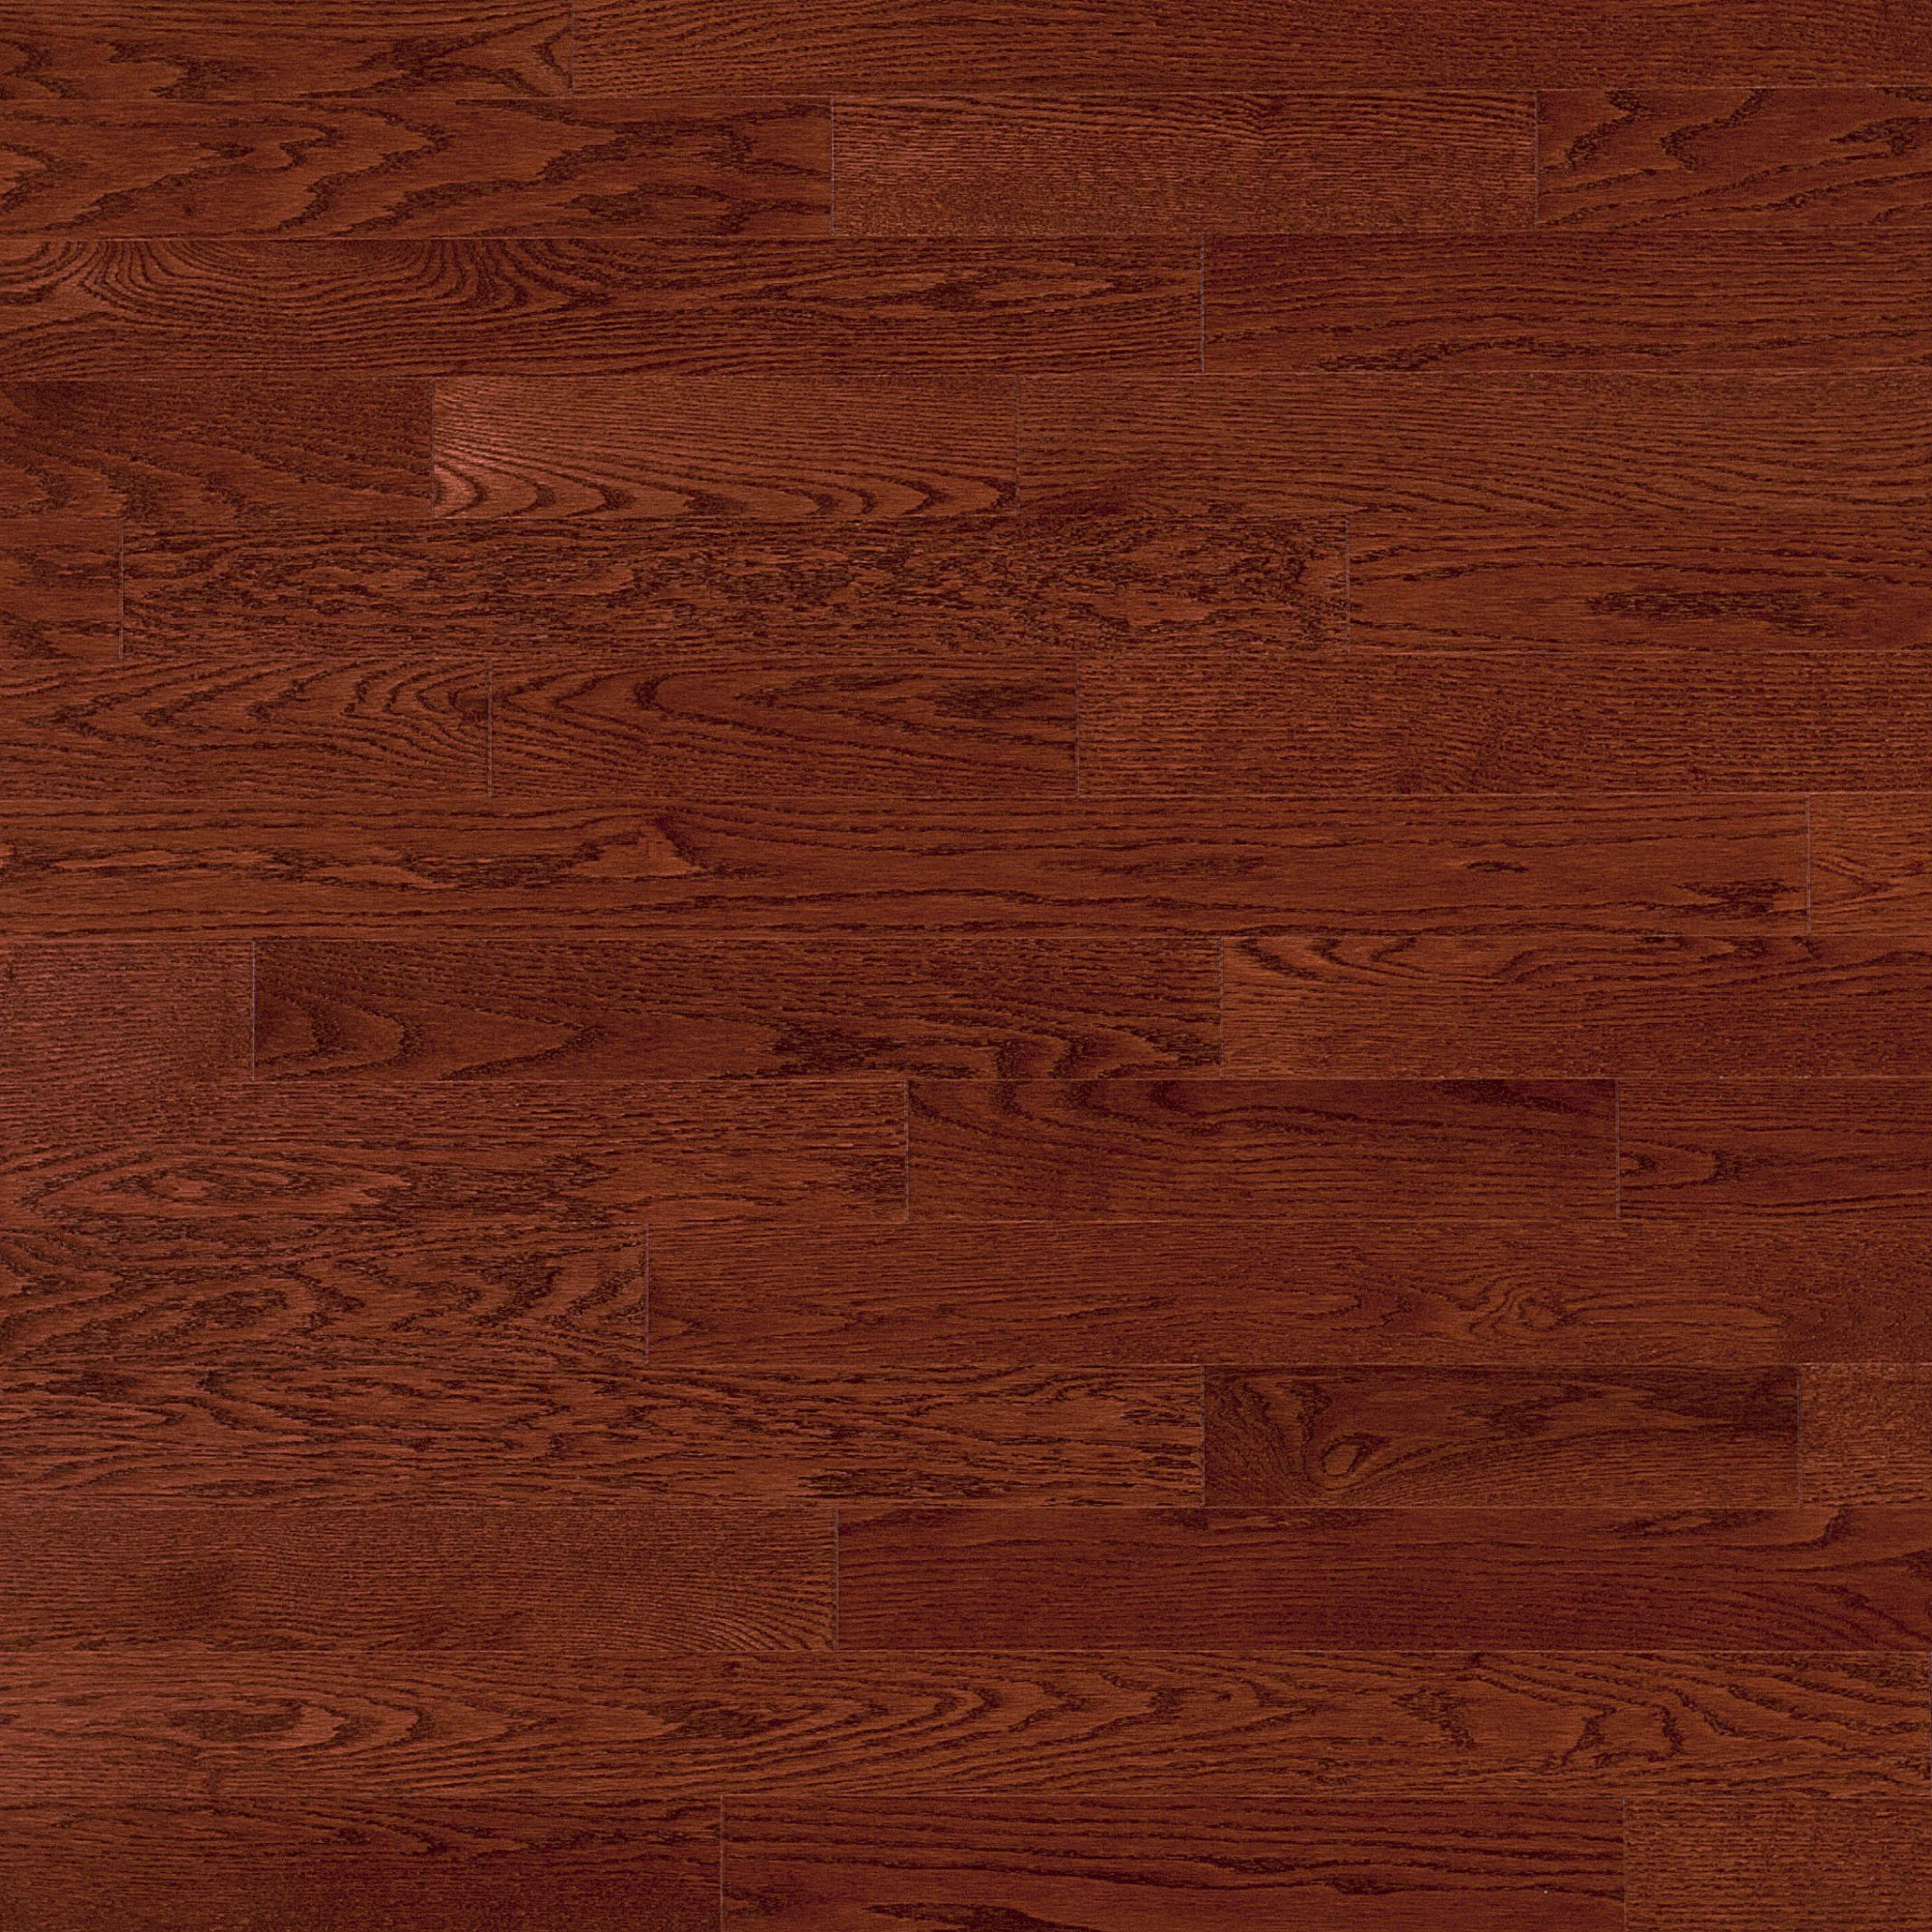 Red Oak Canyon - Floor image